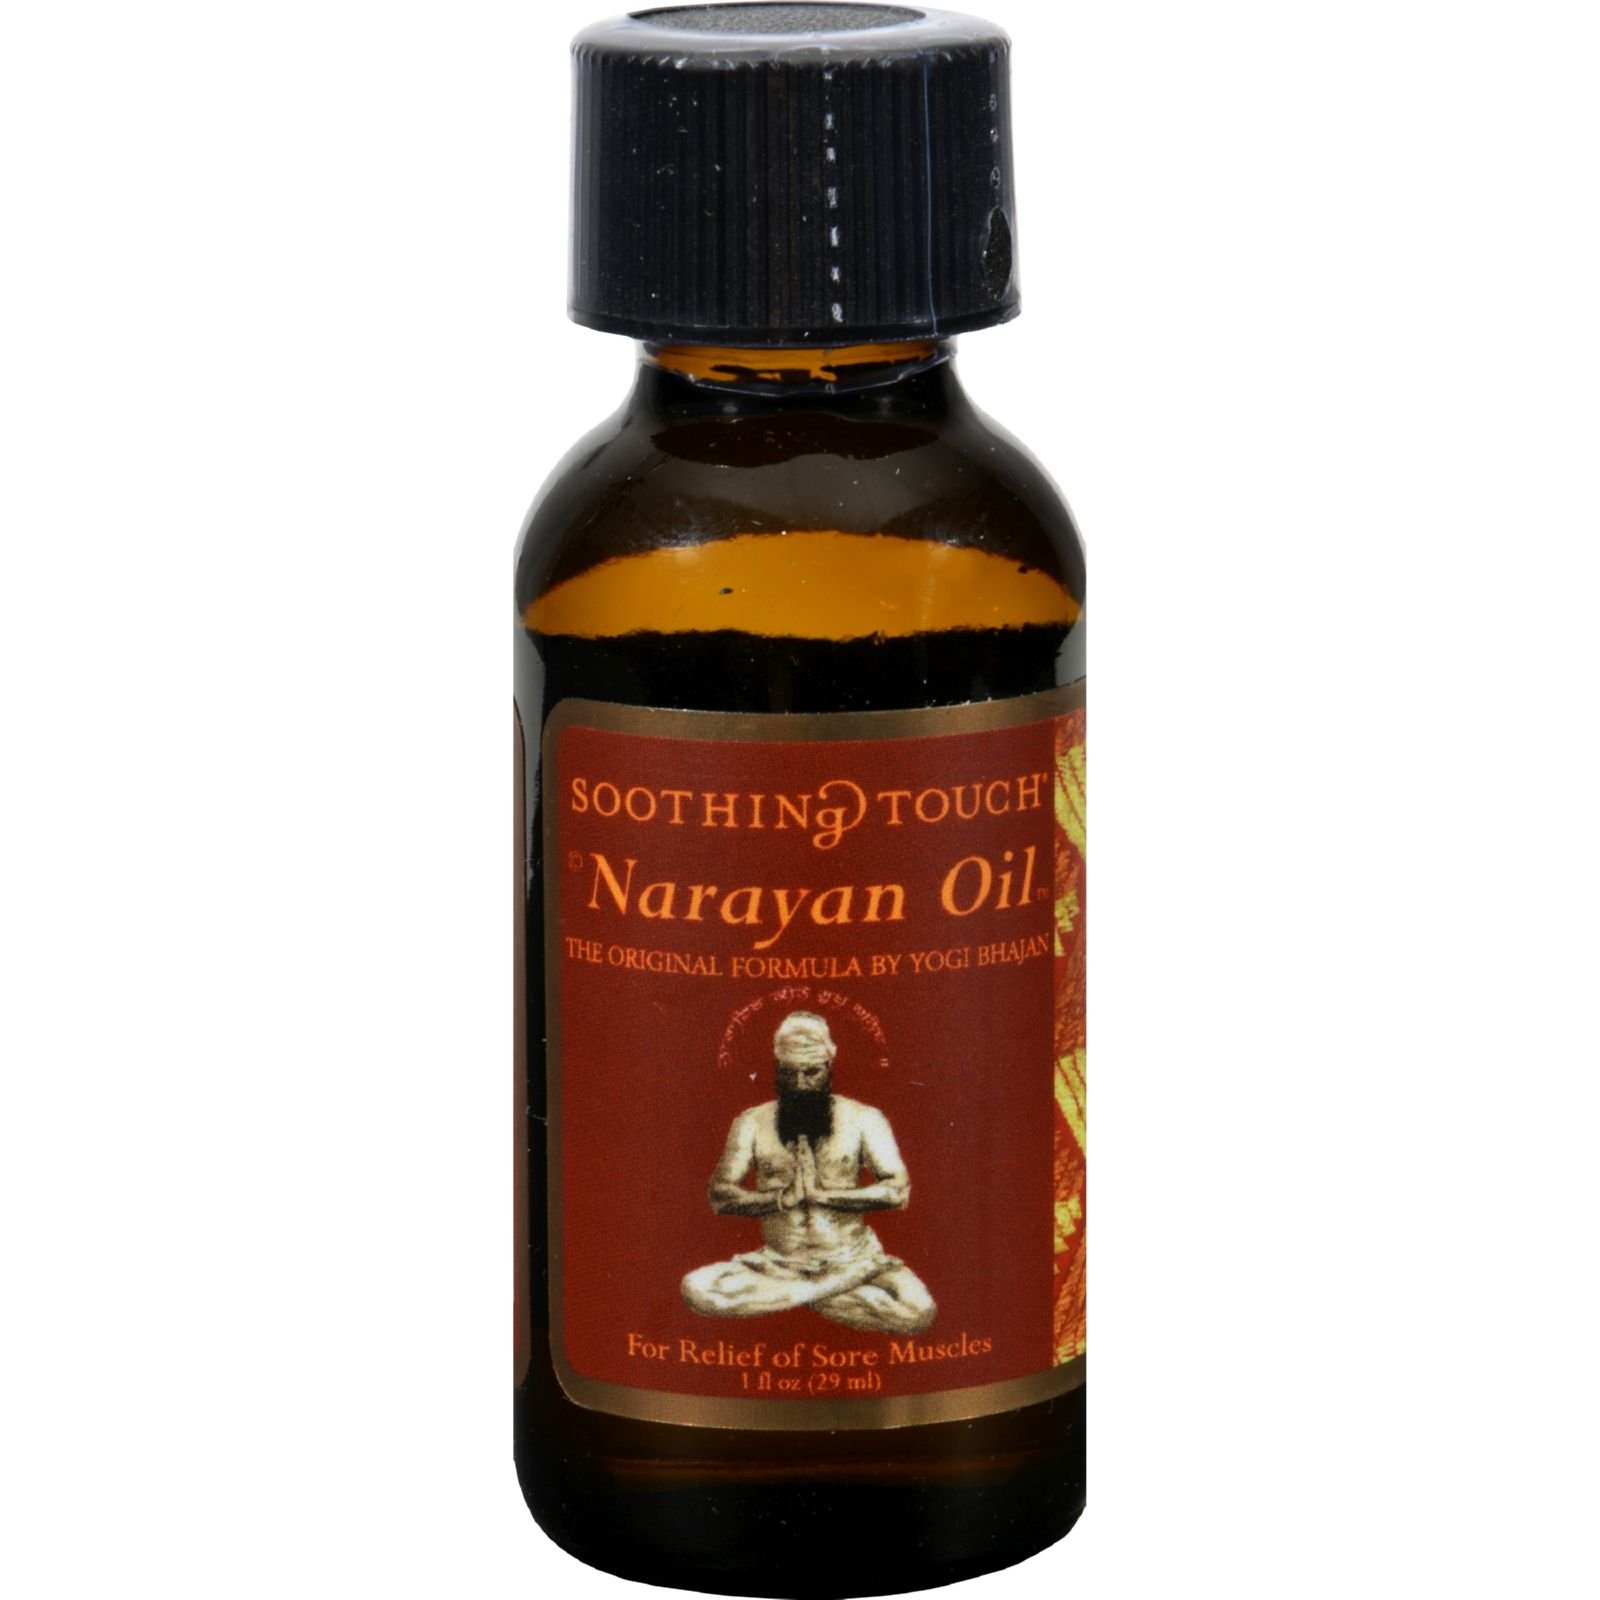 2Pack! Soothing Touch Narayan Oil - Case of 6 - 1 oz